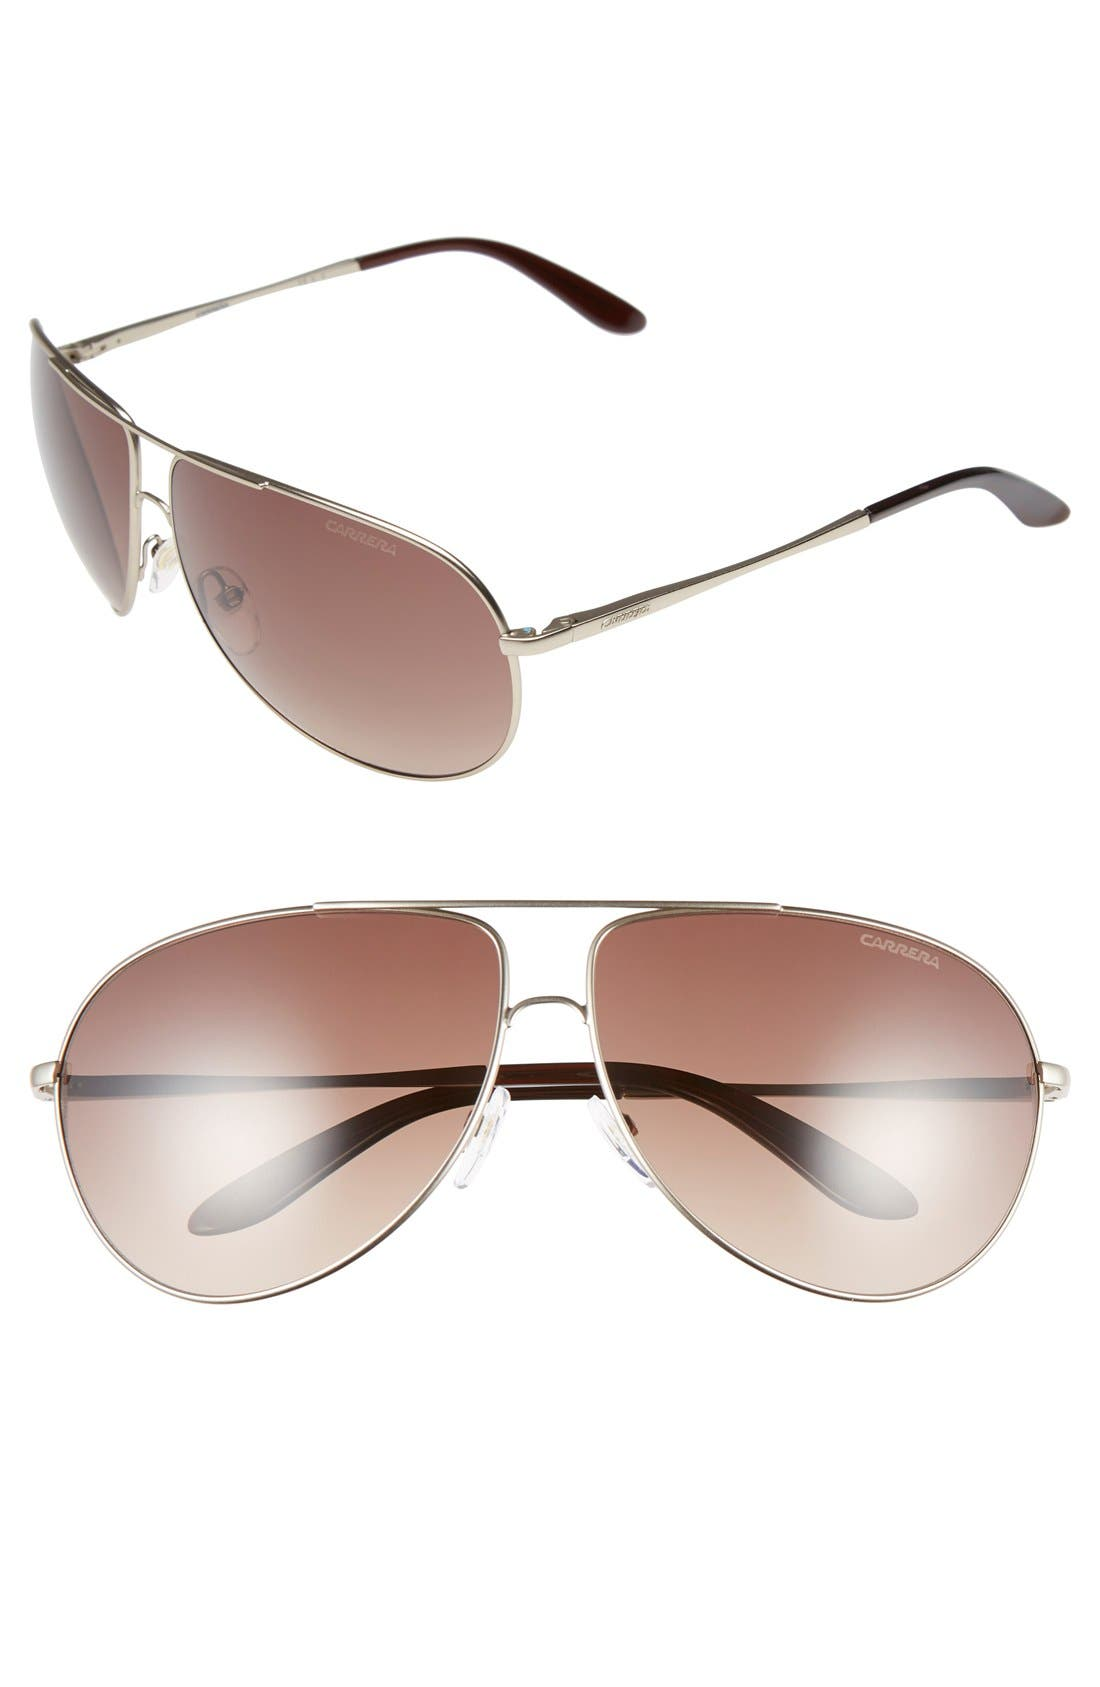 Carrera Eyewear 64mm Aviator Sunglasses